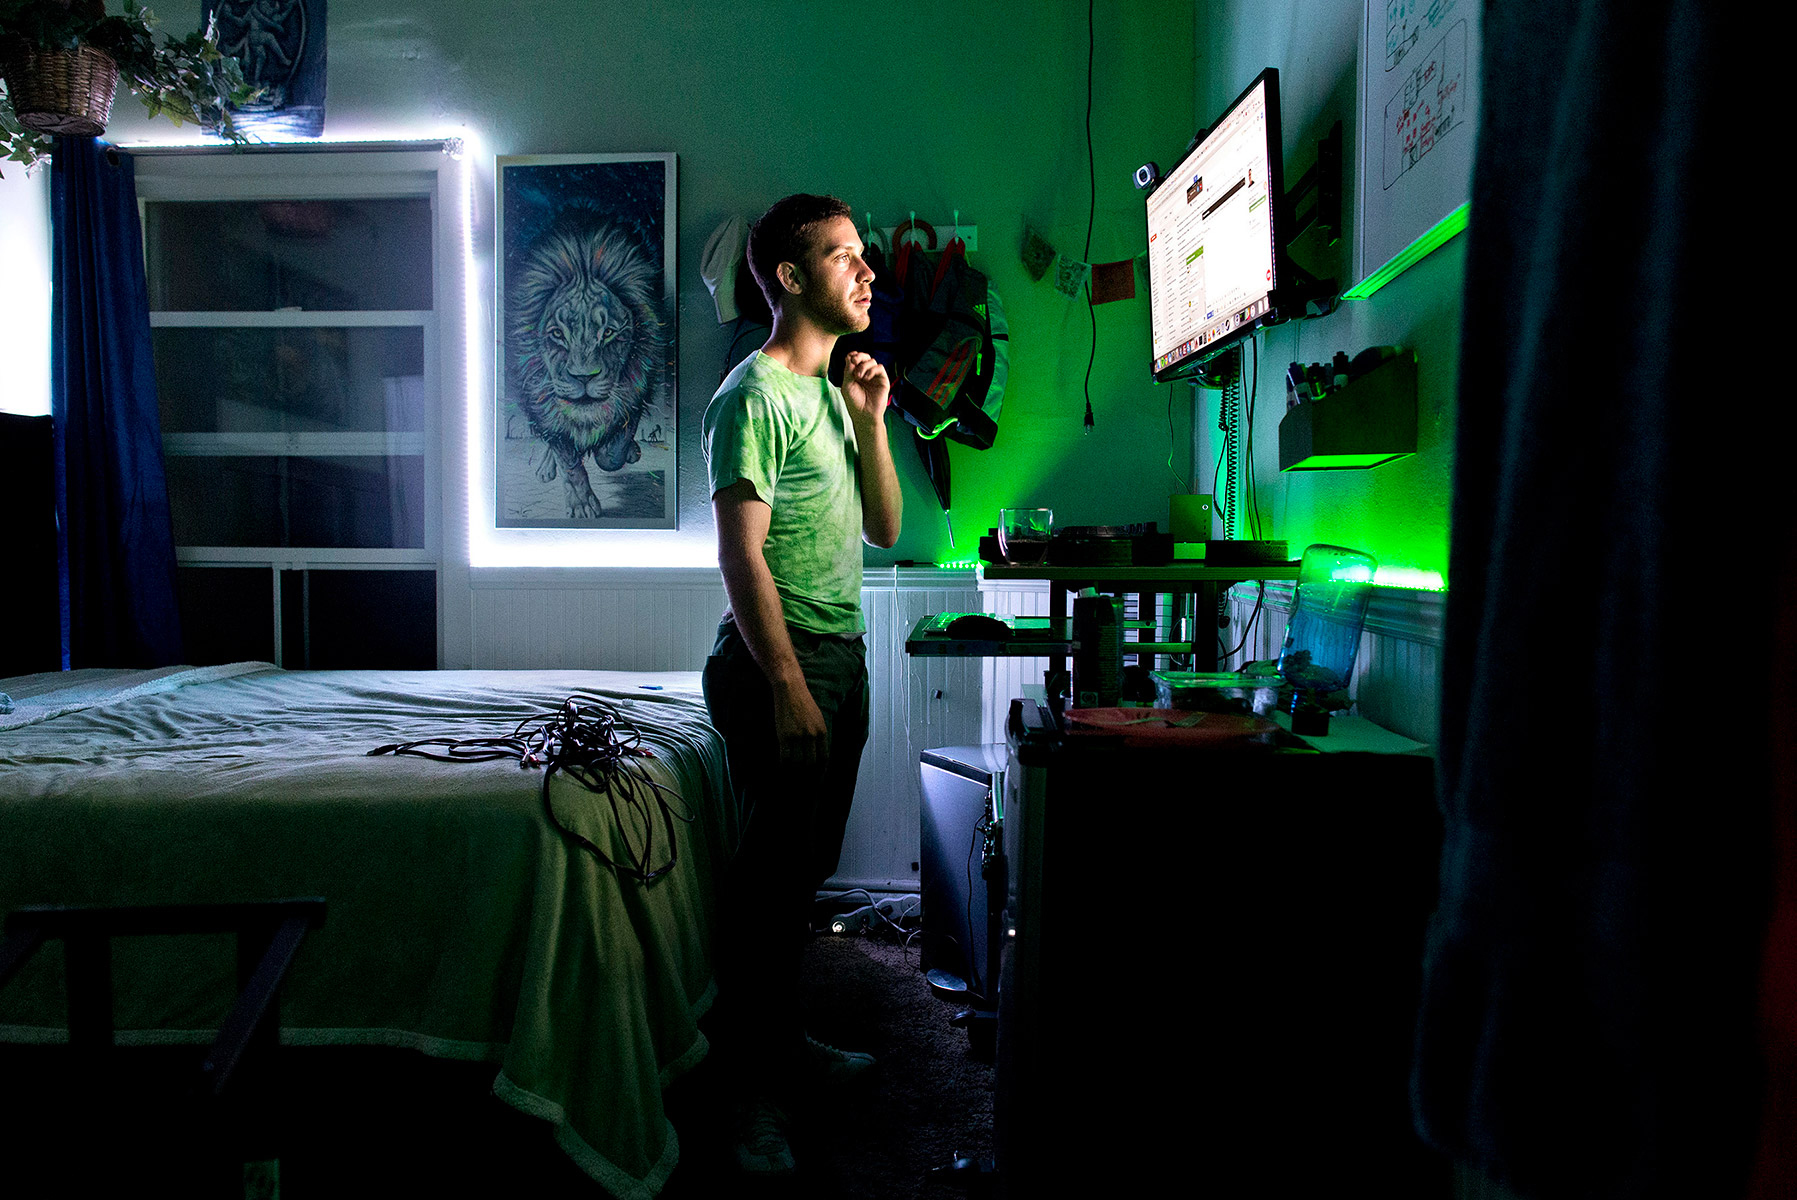 Ben Greenberg, one of the residents of 20 Mission, works in his room at the co-living community in San Francisco, California in July 2015. The space is a former single-room-occupancy hotel that had been vacant for several years before being turned into the co-living community. Greenberg is a programmer followed his passion for all things that glow and founded a start-up glowyshit.com where he sells glow-in-the-dark decorations and party supplies.